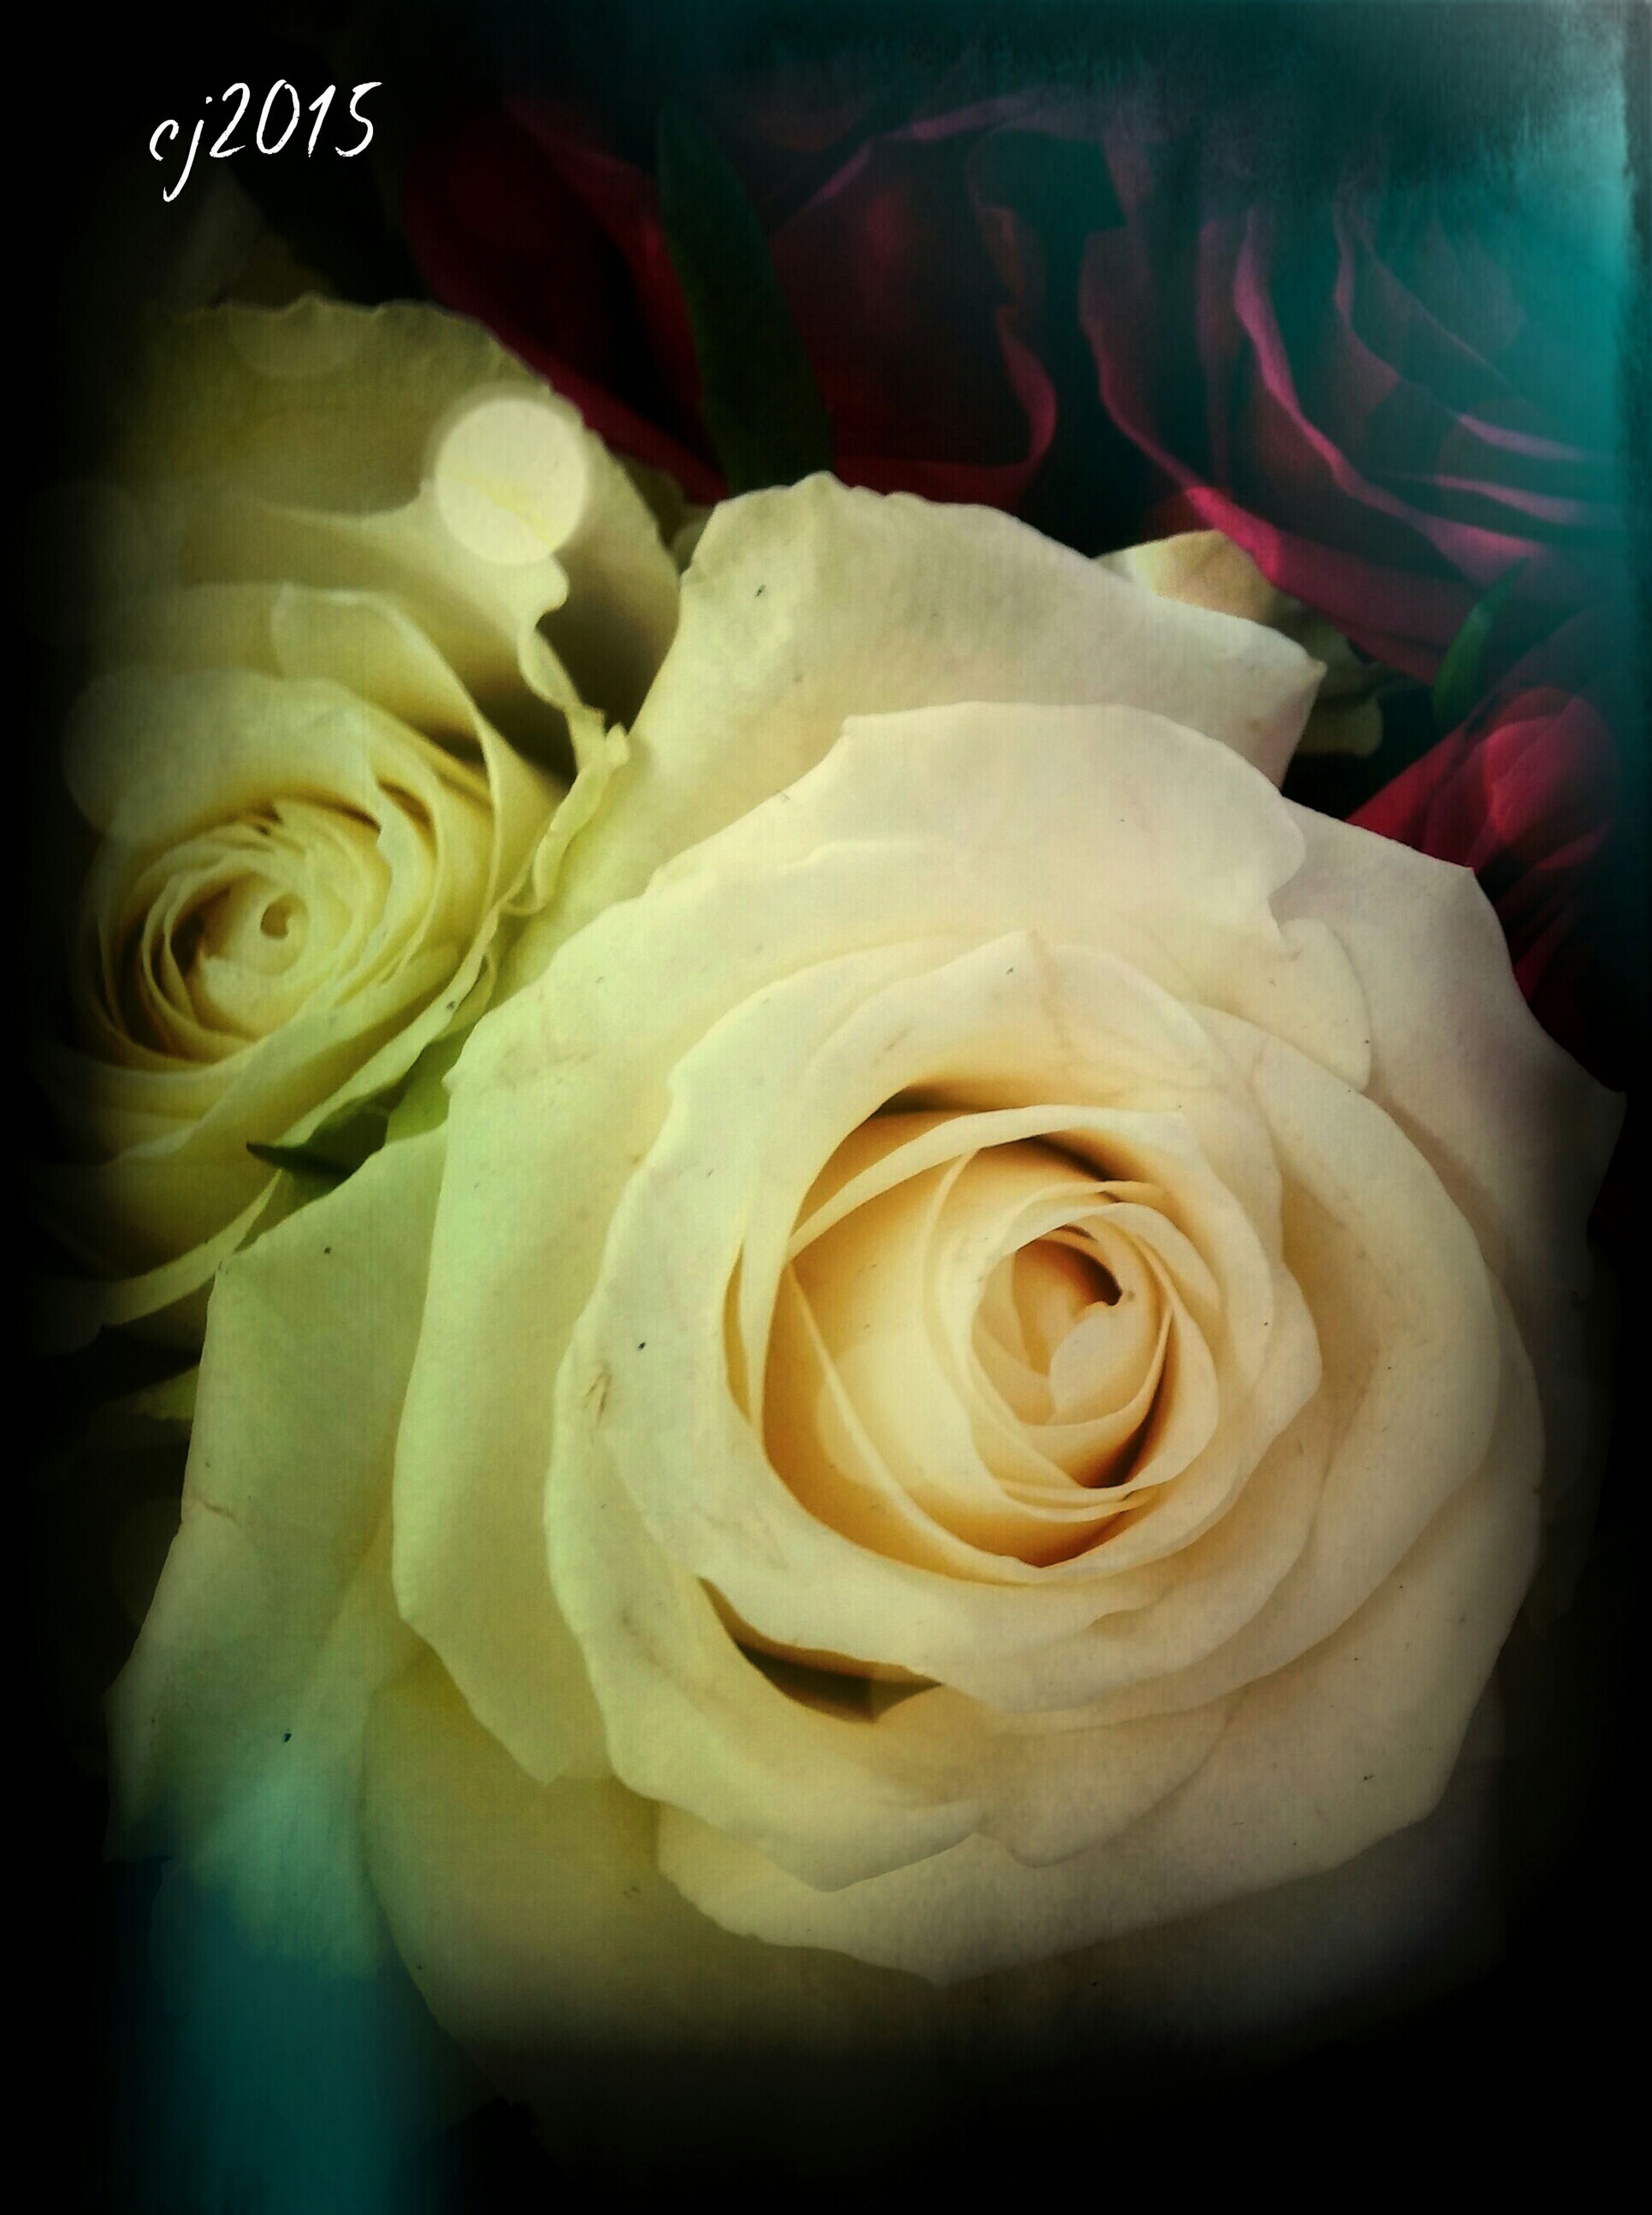 flower, petal, rose - flower, flower head, freshness, fragility, beauty in nature, close-up, rose, transfer print, single flower, nature, growth, auto post production filter, blooming, white color, indoors, softness, single rose, in bloom